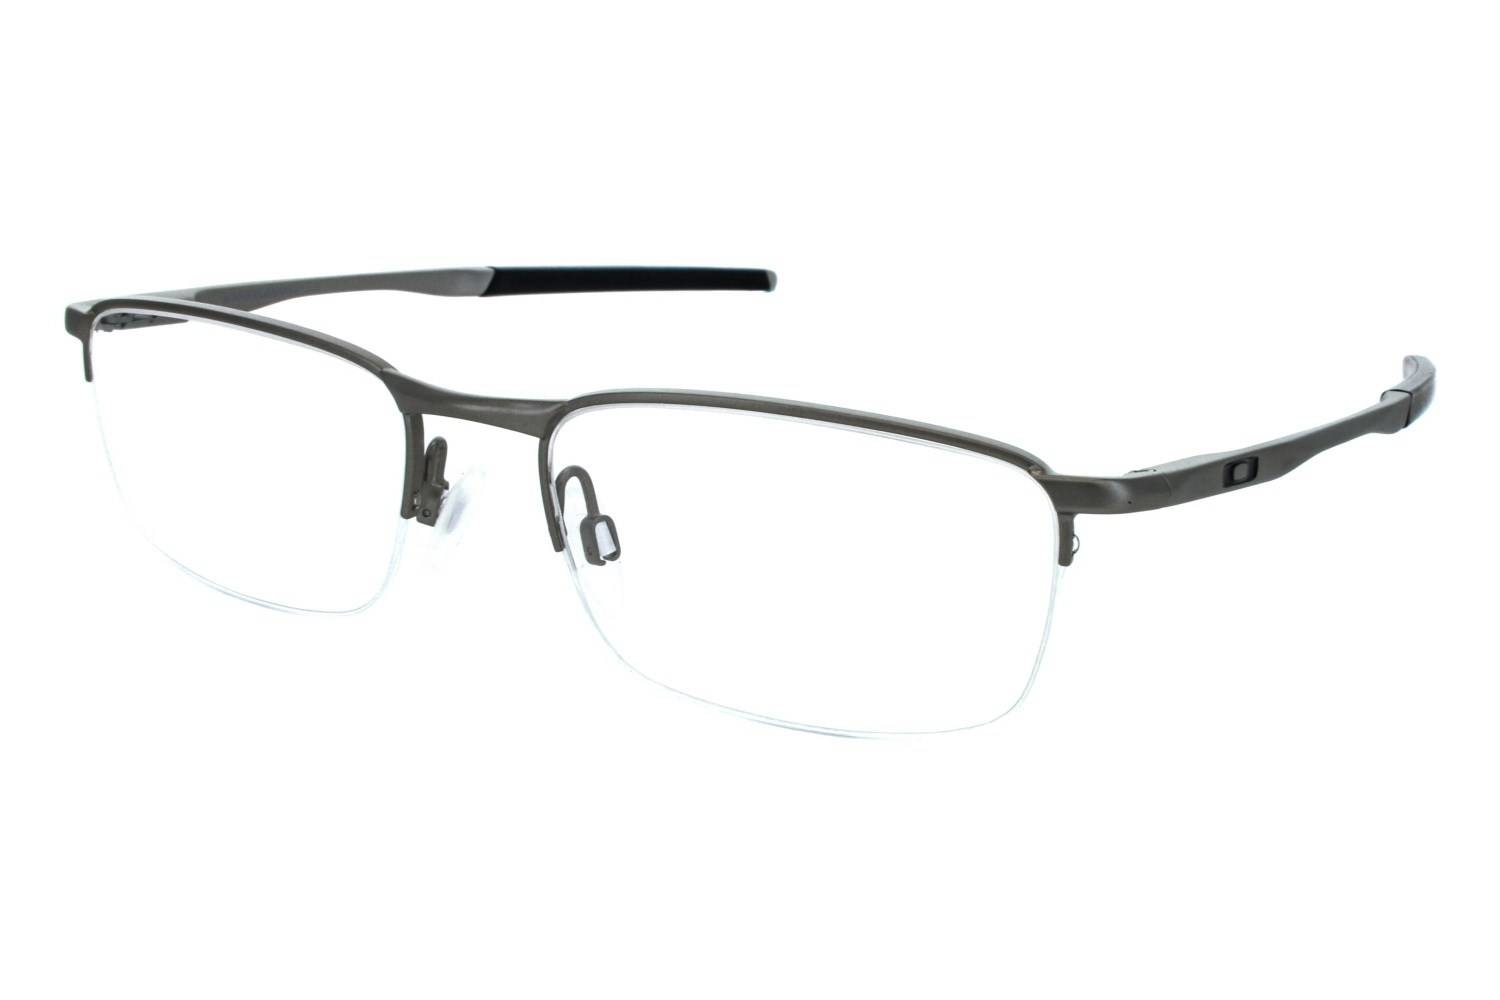 Oakley Barrelhouse 05 51 Prescription Eyeglasses Frames